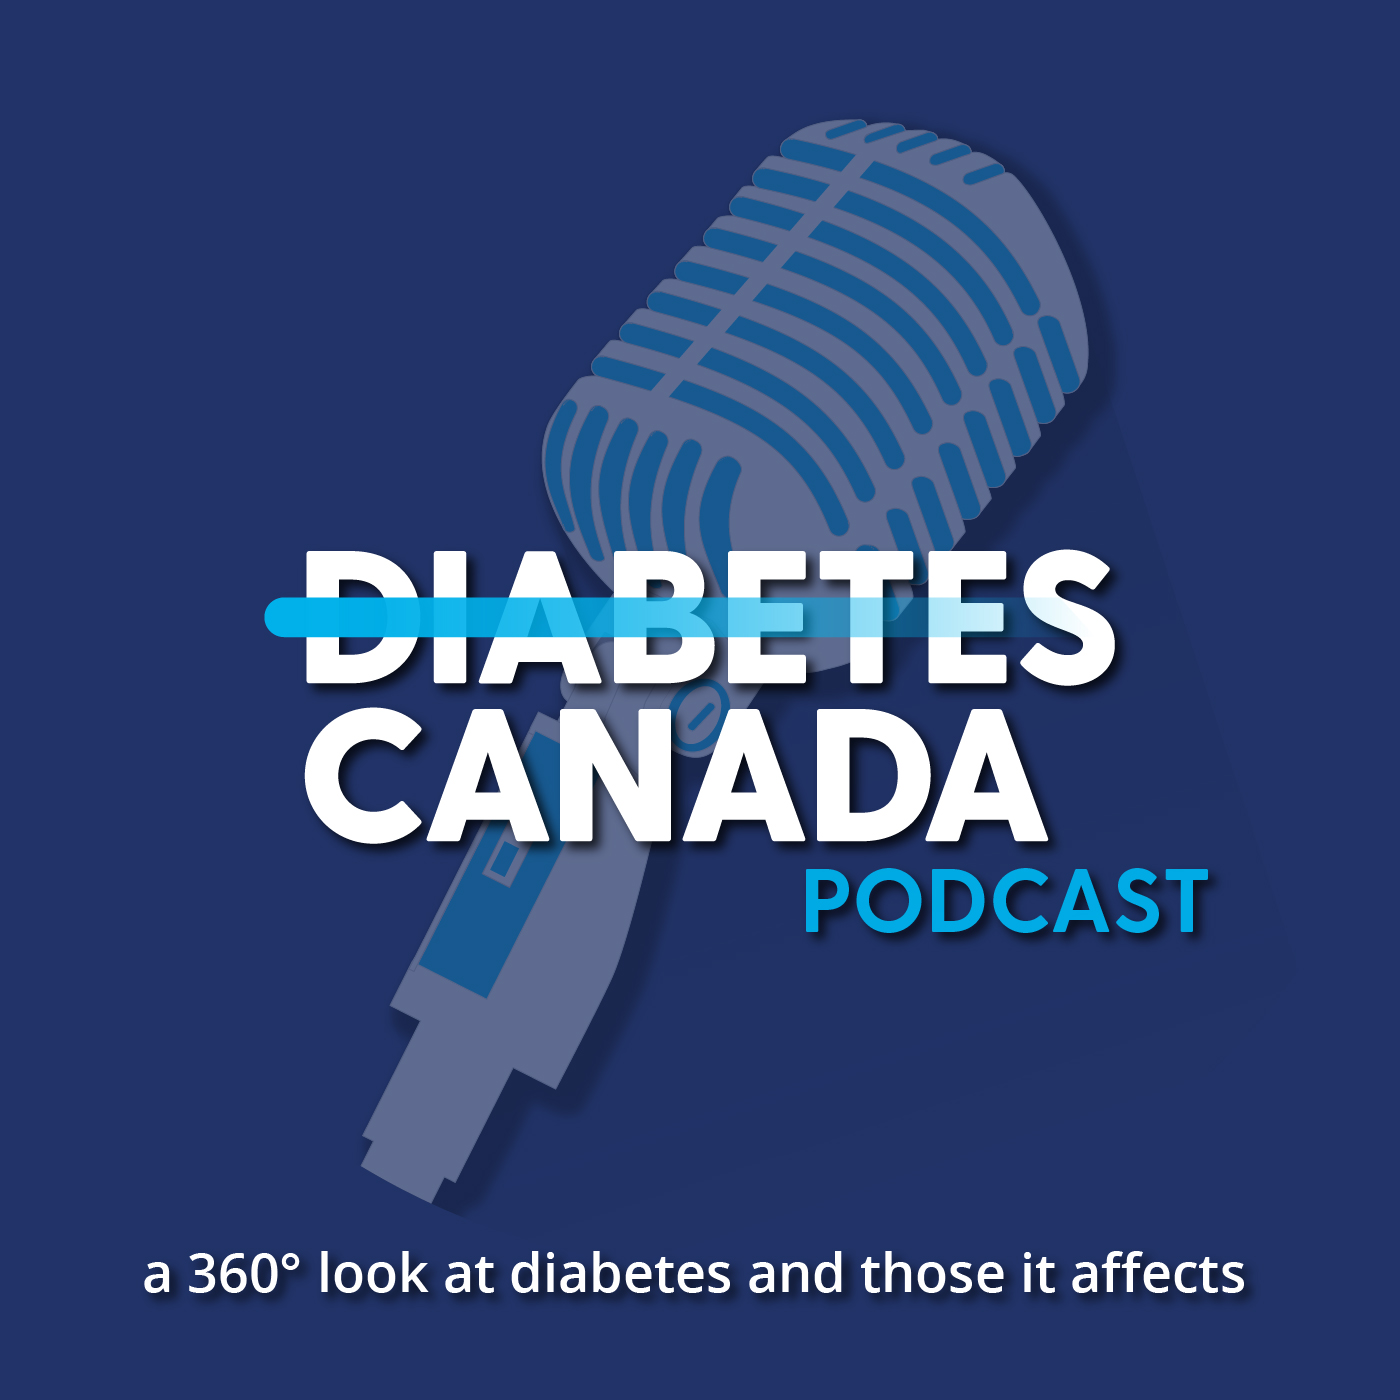 Diabetes Canada Podcast